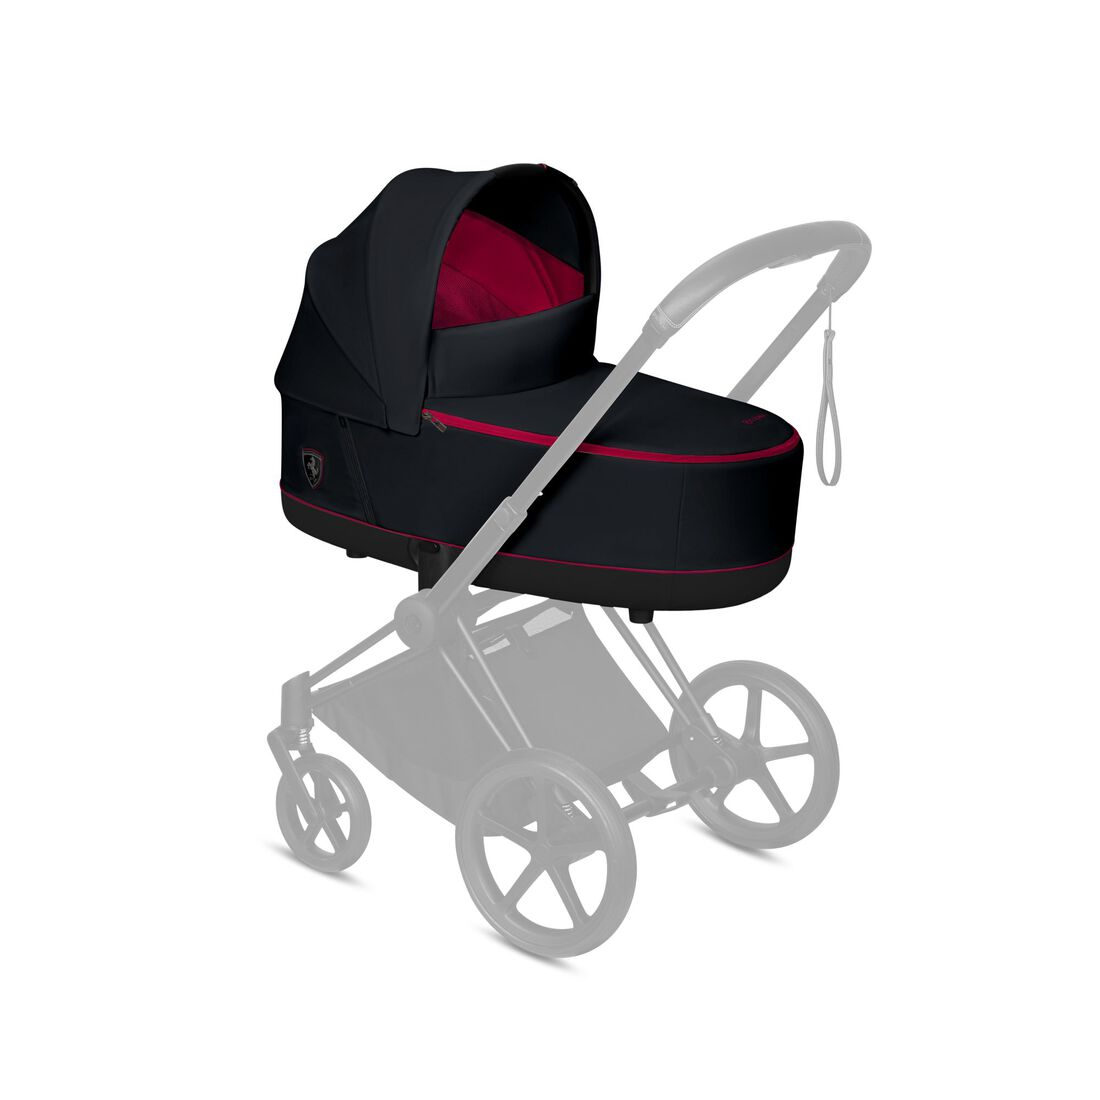 CYBEX Priam Lux Carry Cot - Ferrari Victory Black in Ferrari Victory Black large image number 4